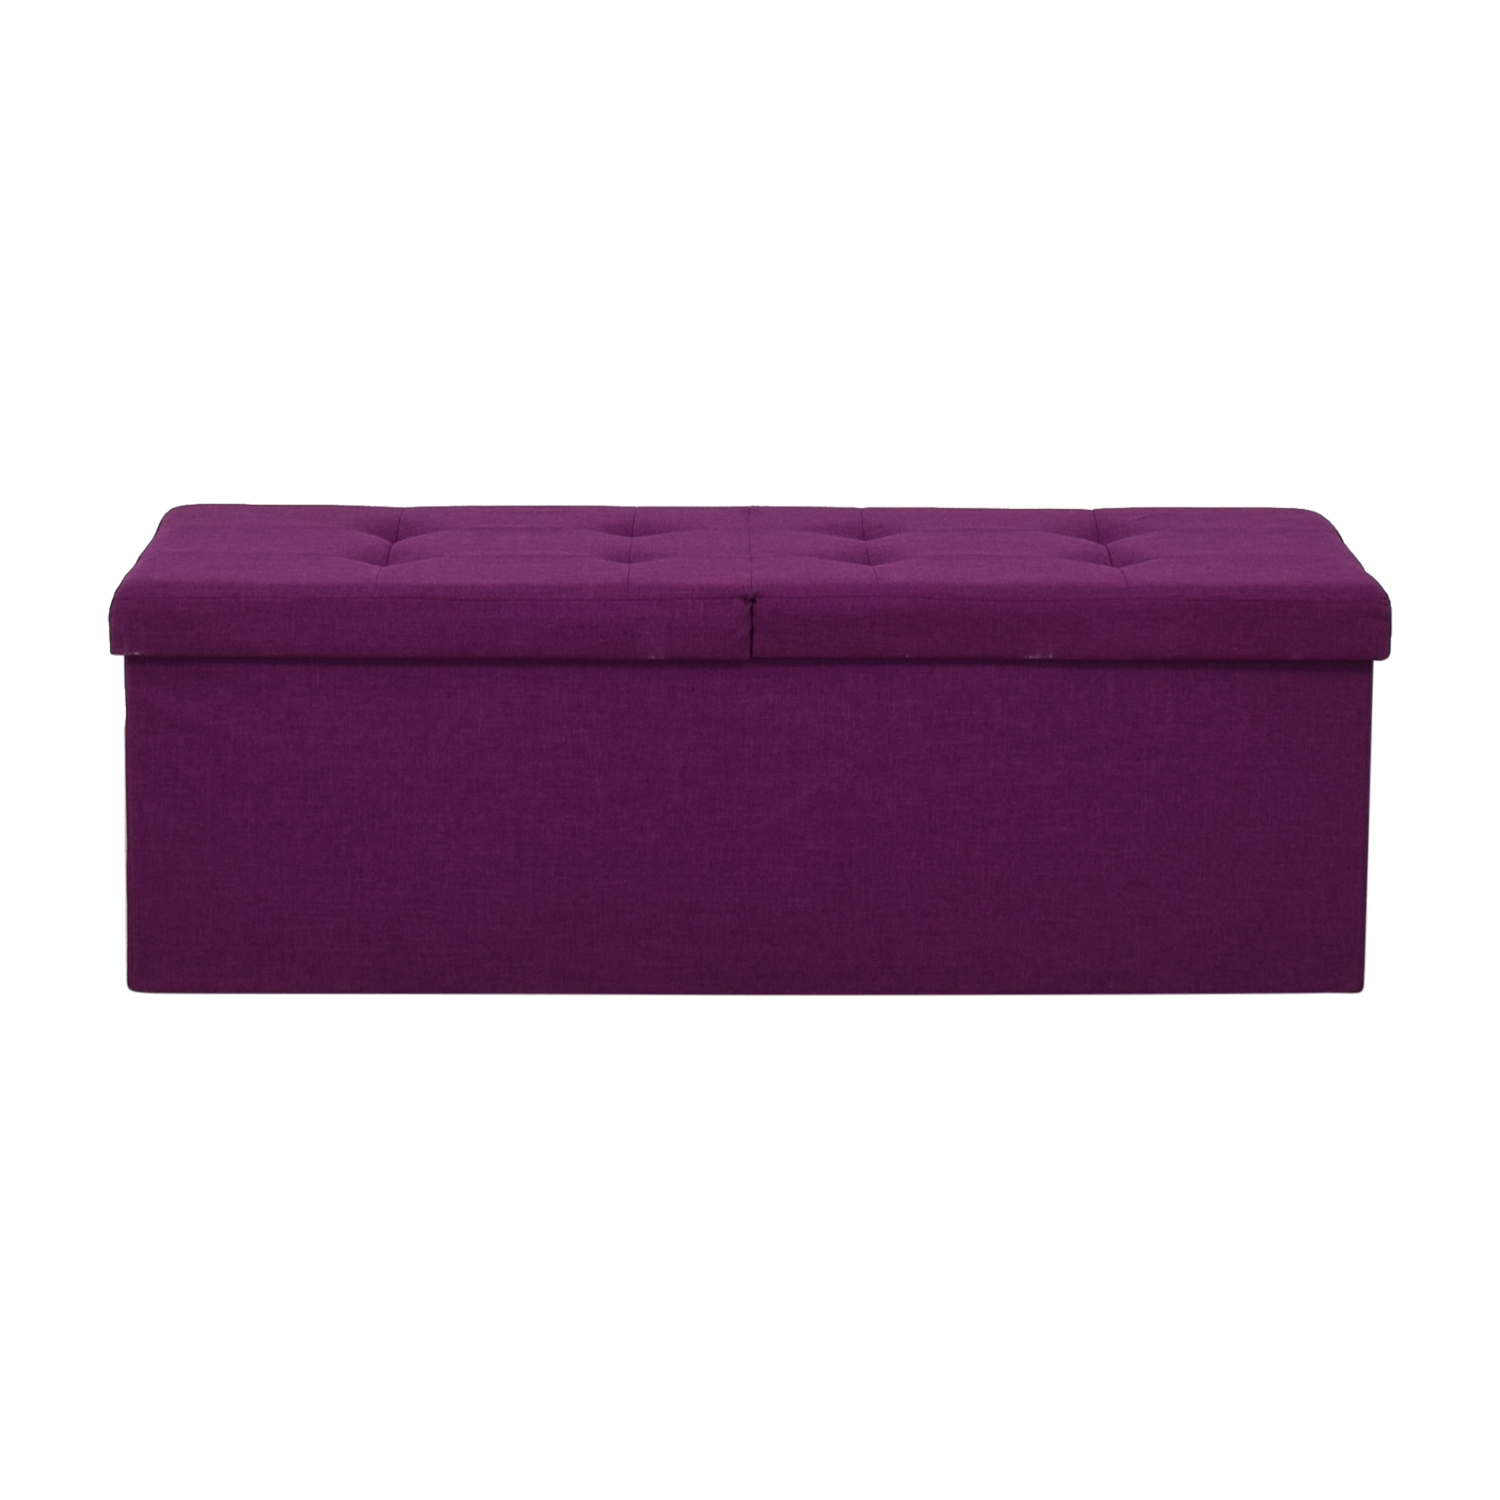 buy  Magenta Tufted Storage Bench online